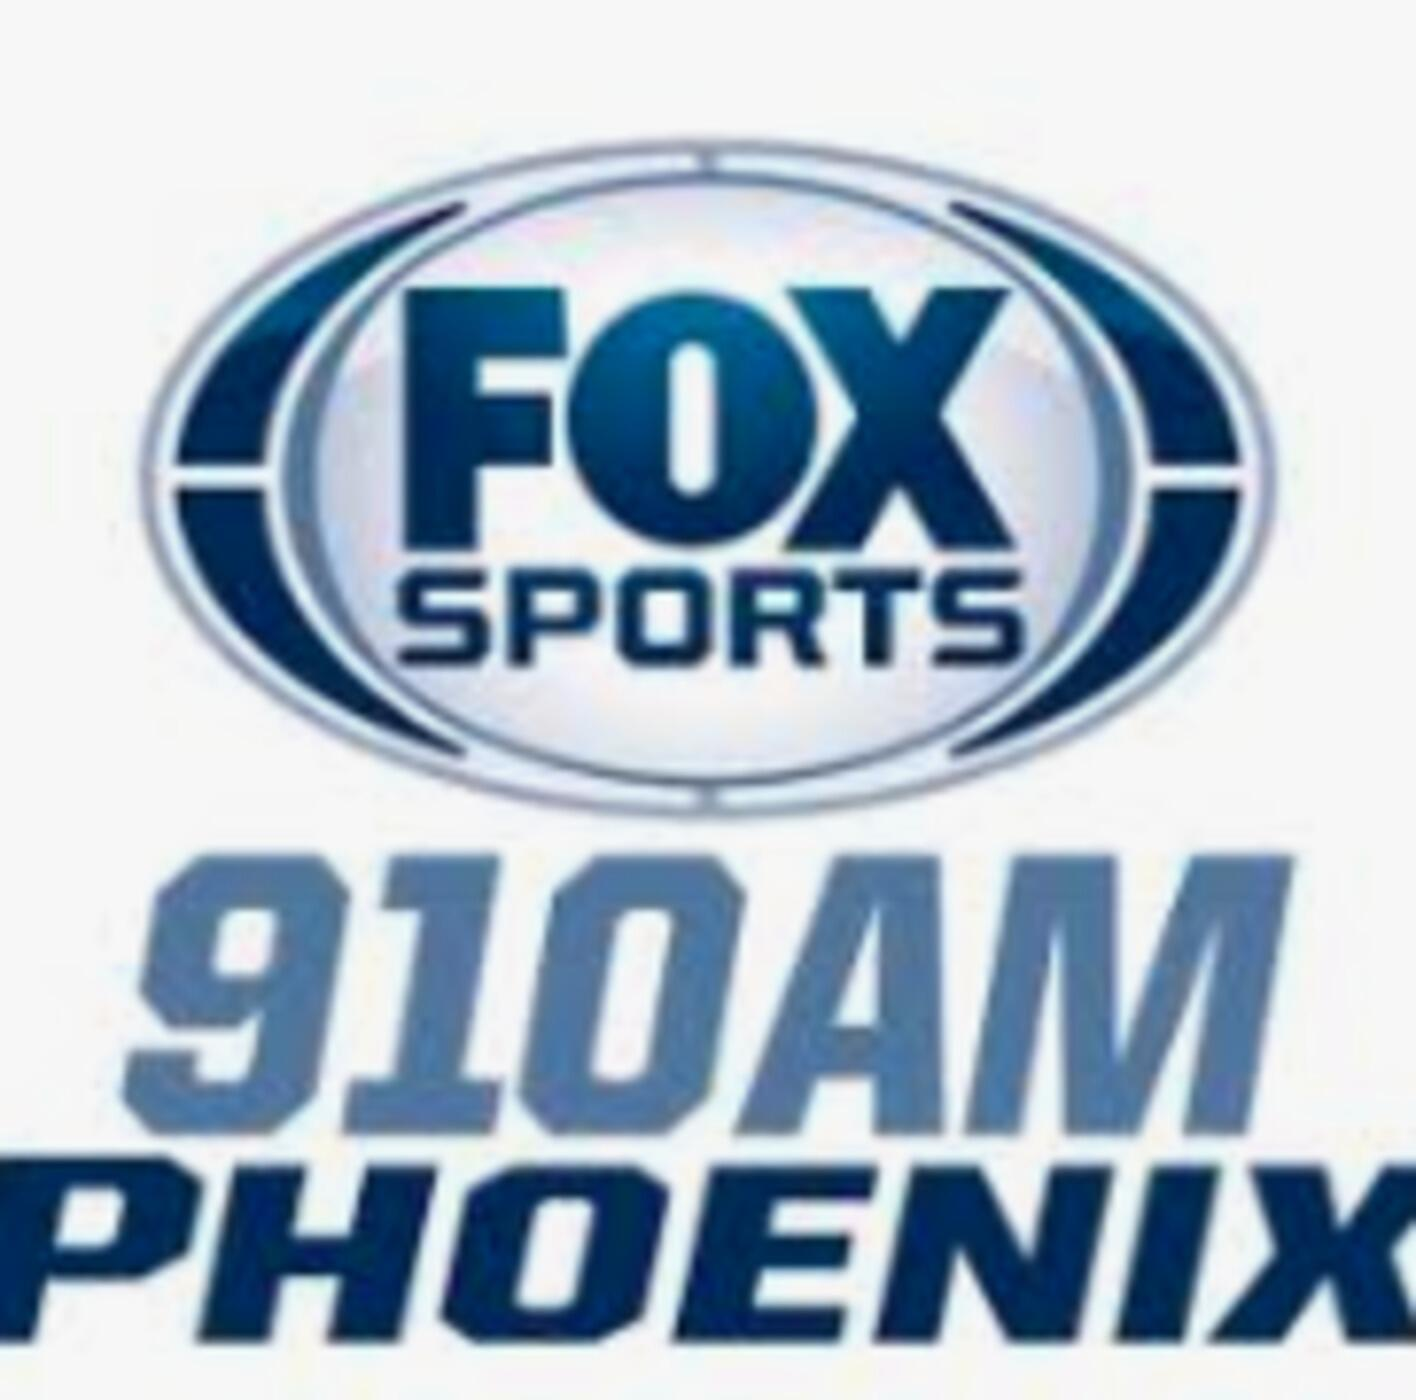 Listen to the FOX Sports 910 On-Demand Episode - Greg Amsinger - Can the Diamondbacks still trade and get Mike Leake? on iHeartRadio | iHeartRadio